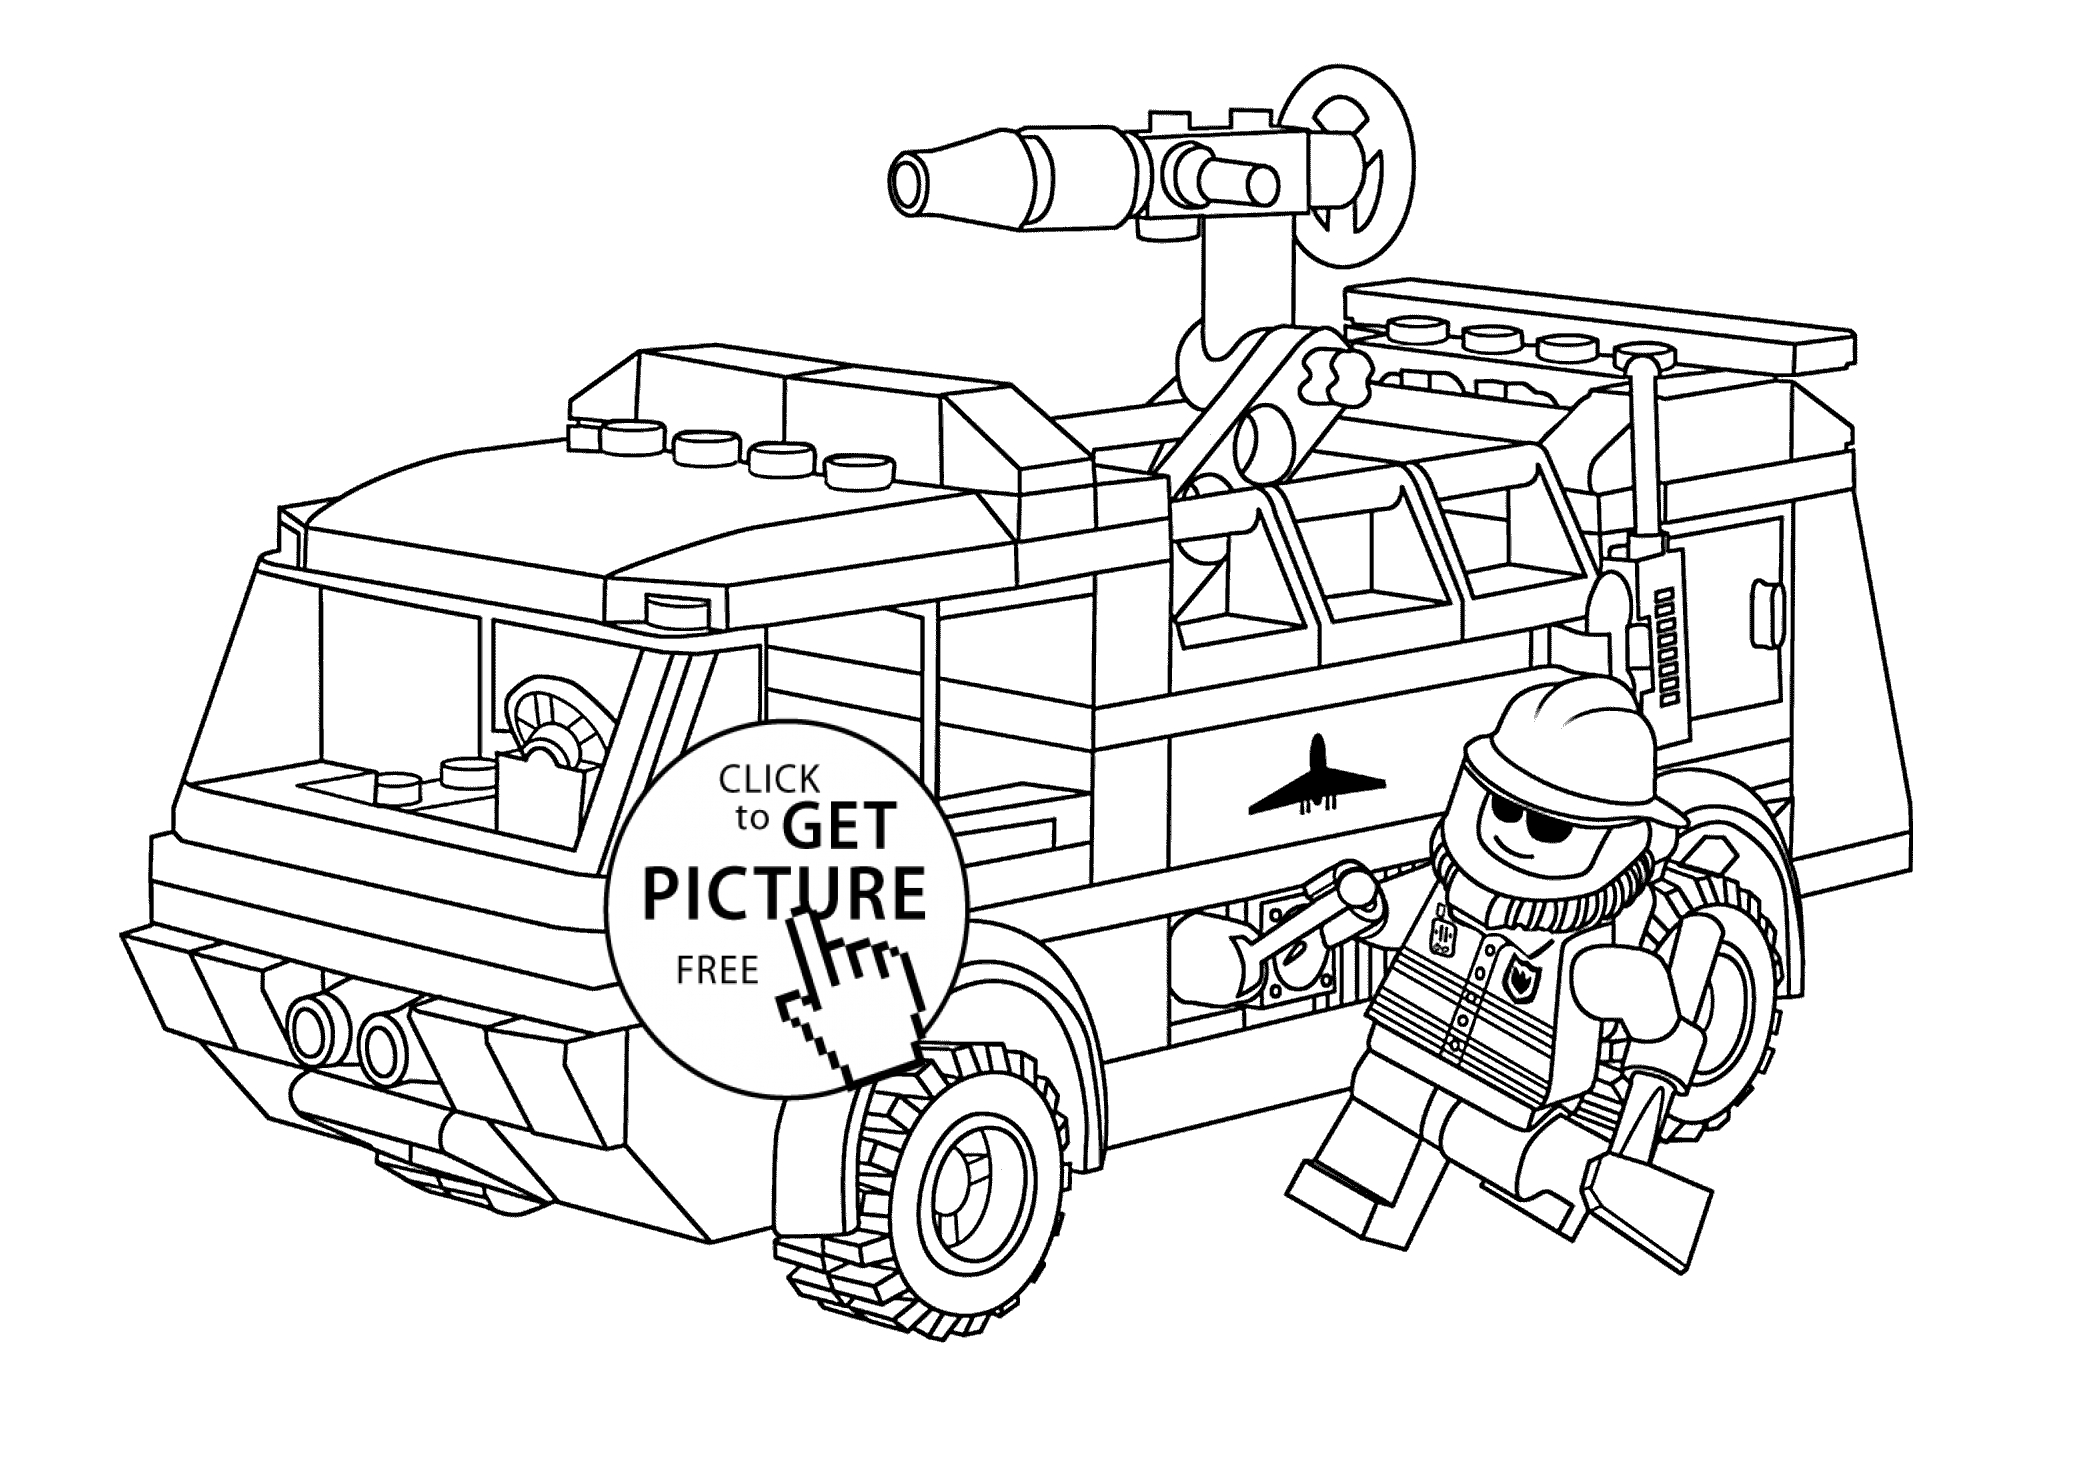 march coloring pages - fireman coloring pages lego firetruck with fireman coloring page for kids printable free free coloring book